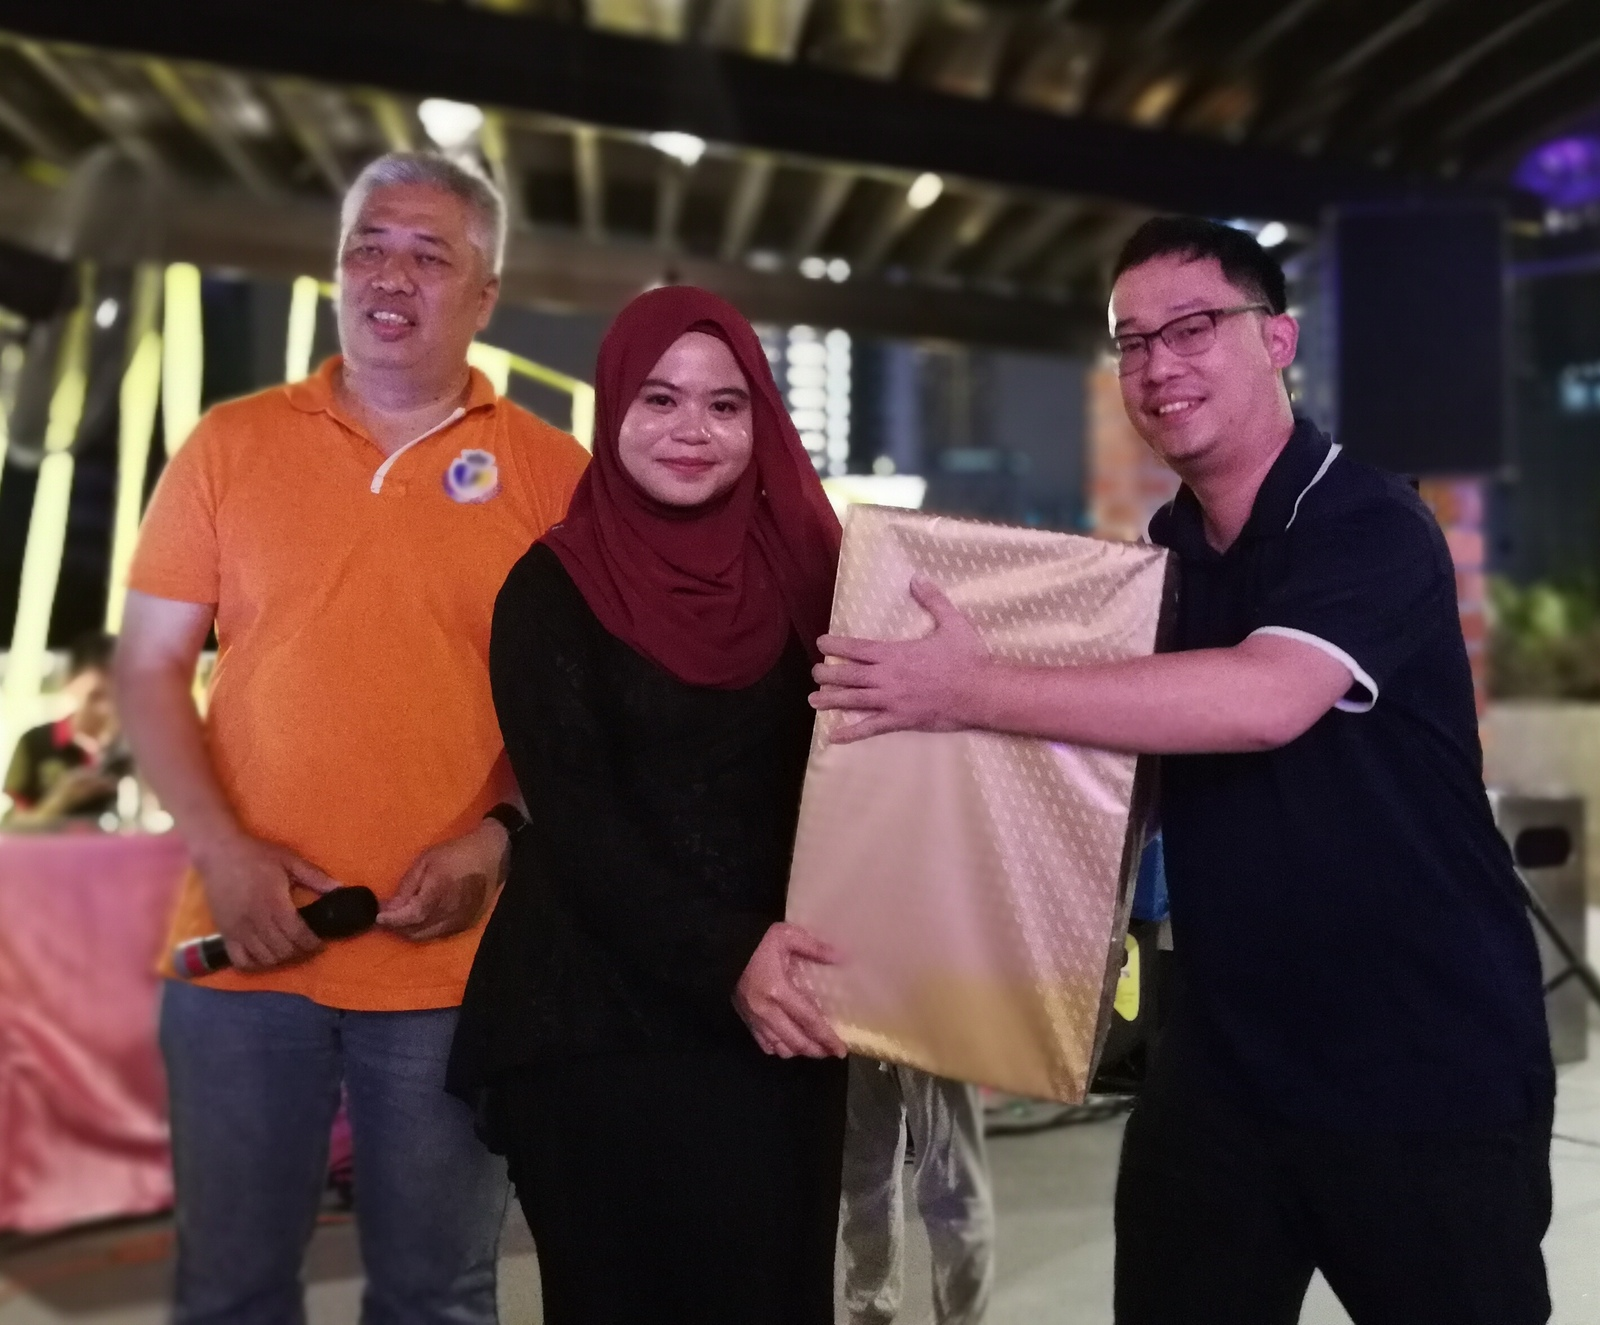 Mr. Kun Zheng Hao invited to present prizes to lucky draw winner